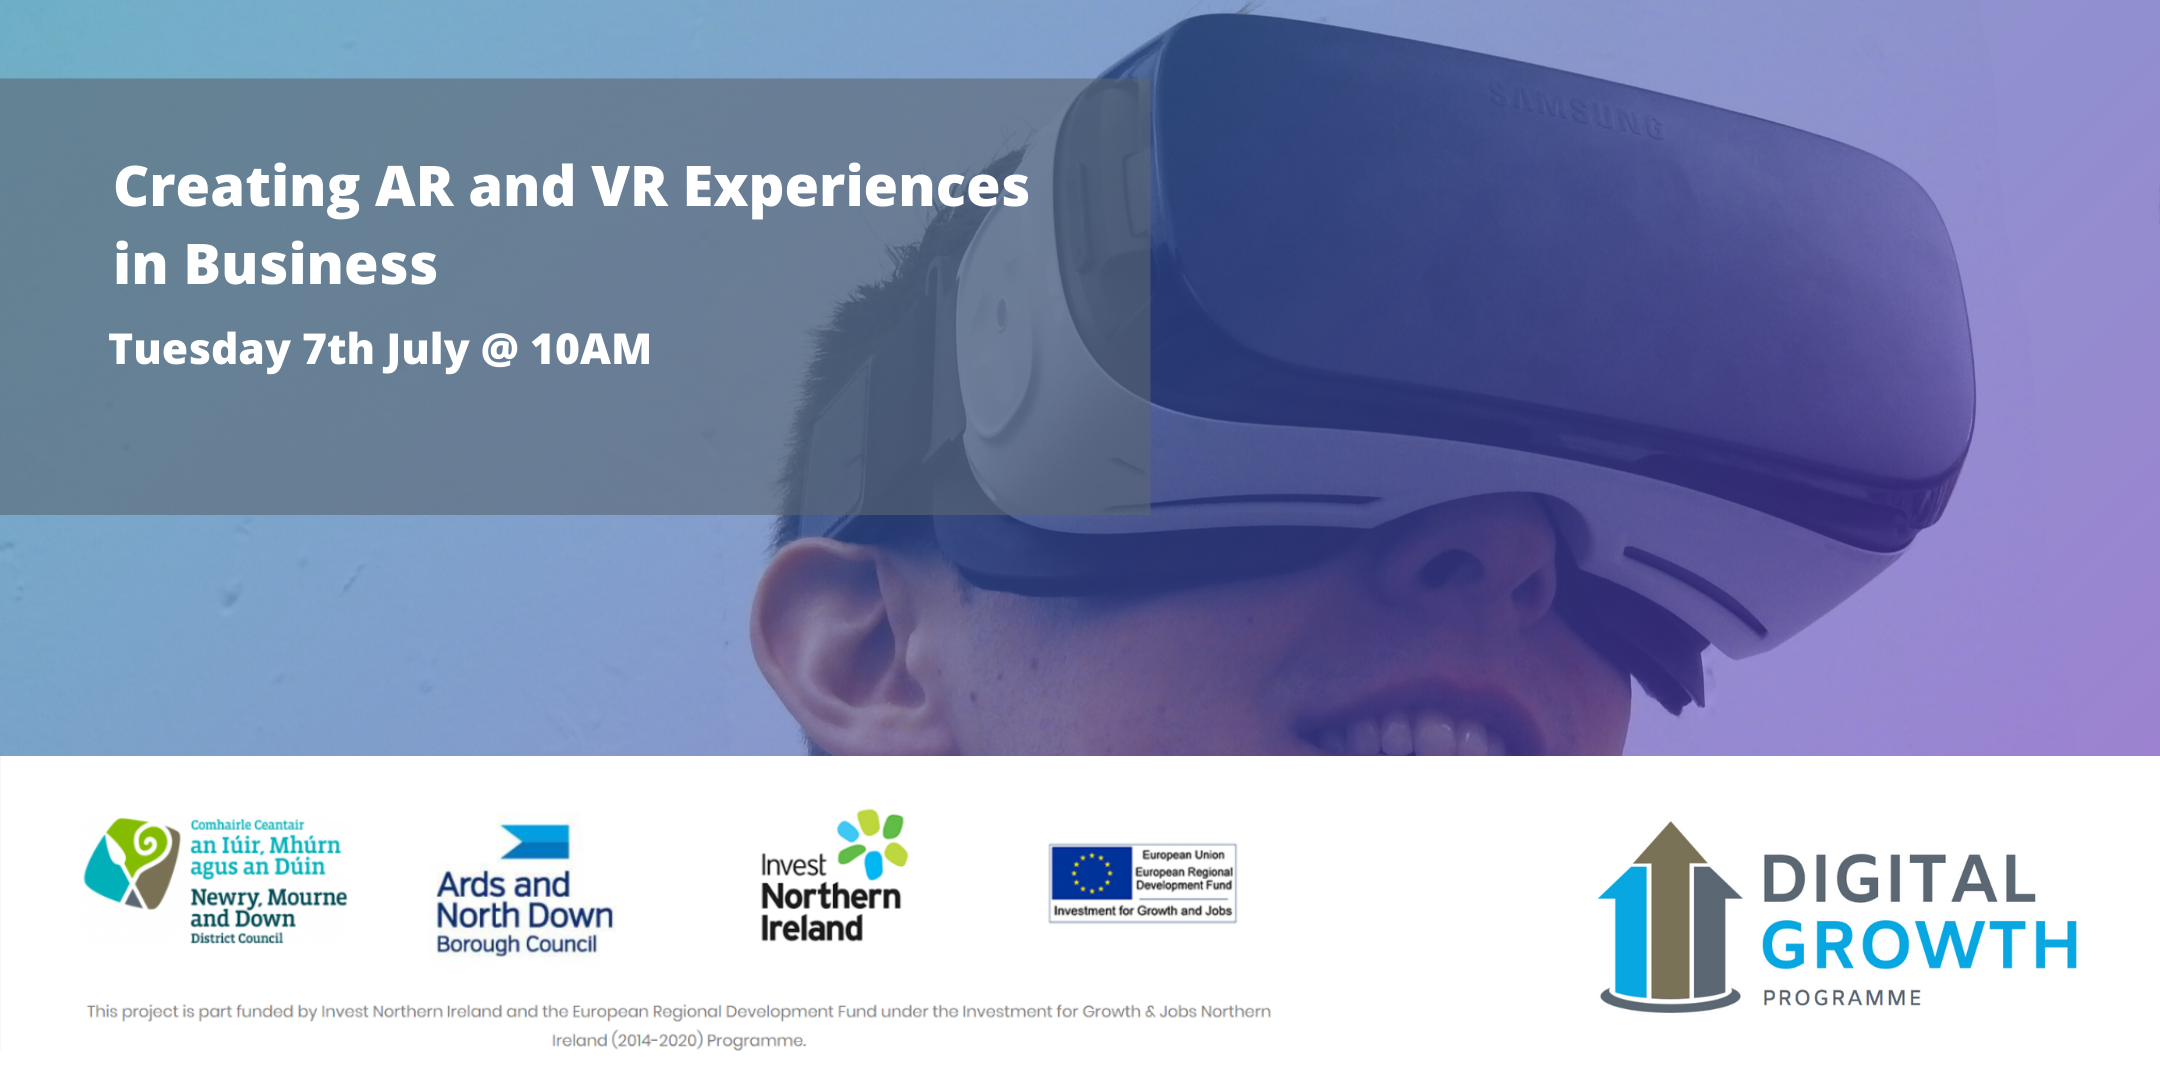 Creating AR and VR Experiences in Your Business